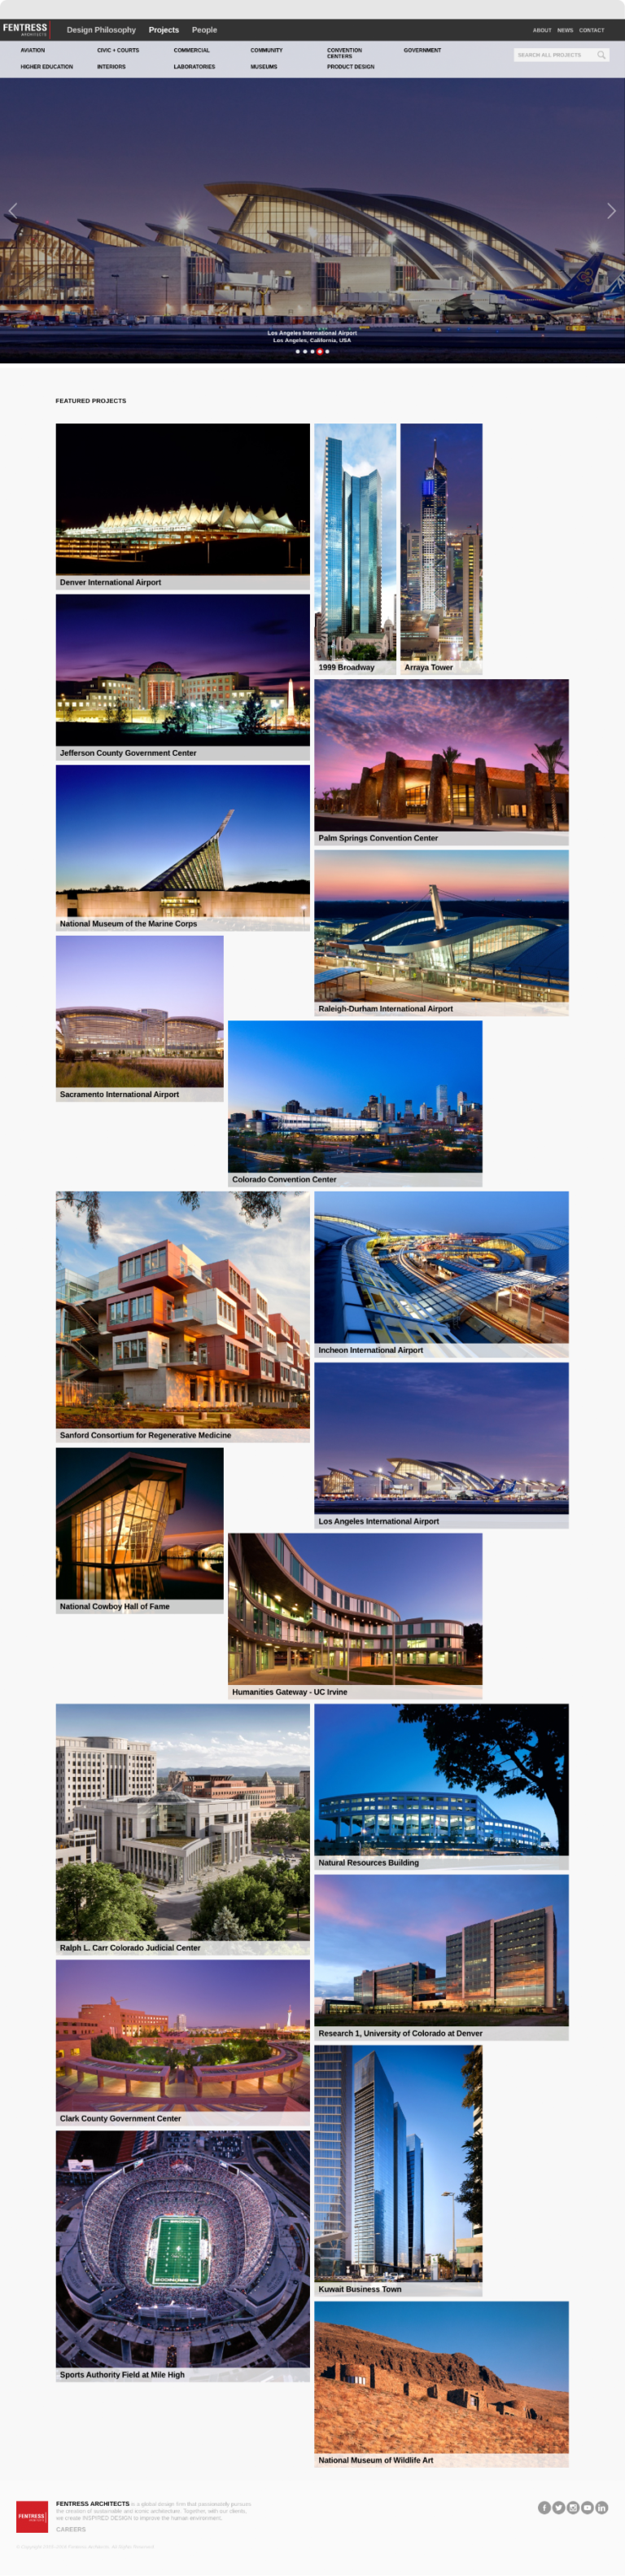 Screenshot of Fentress Architects Project Landing Page